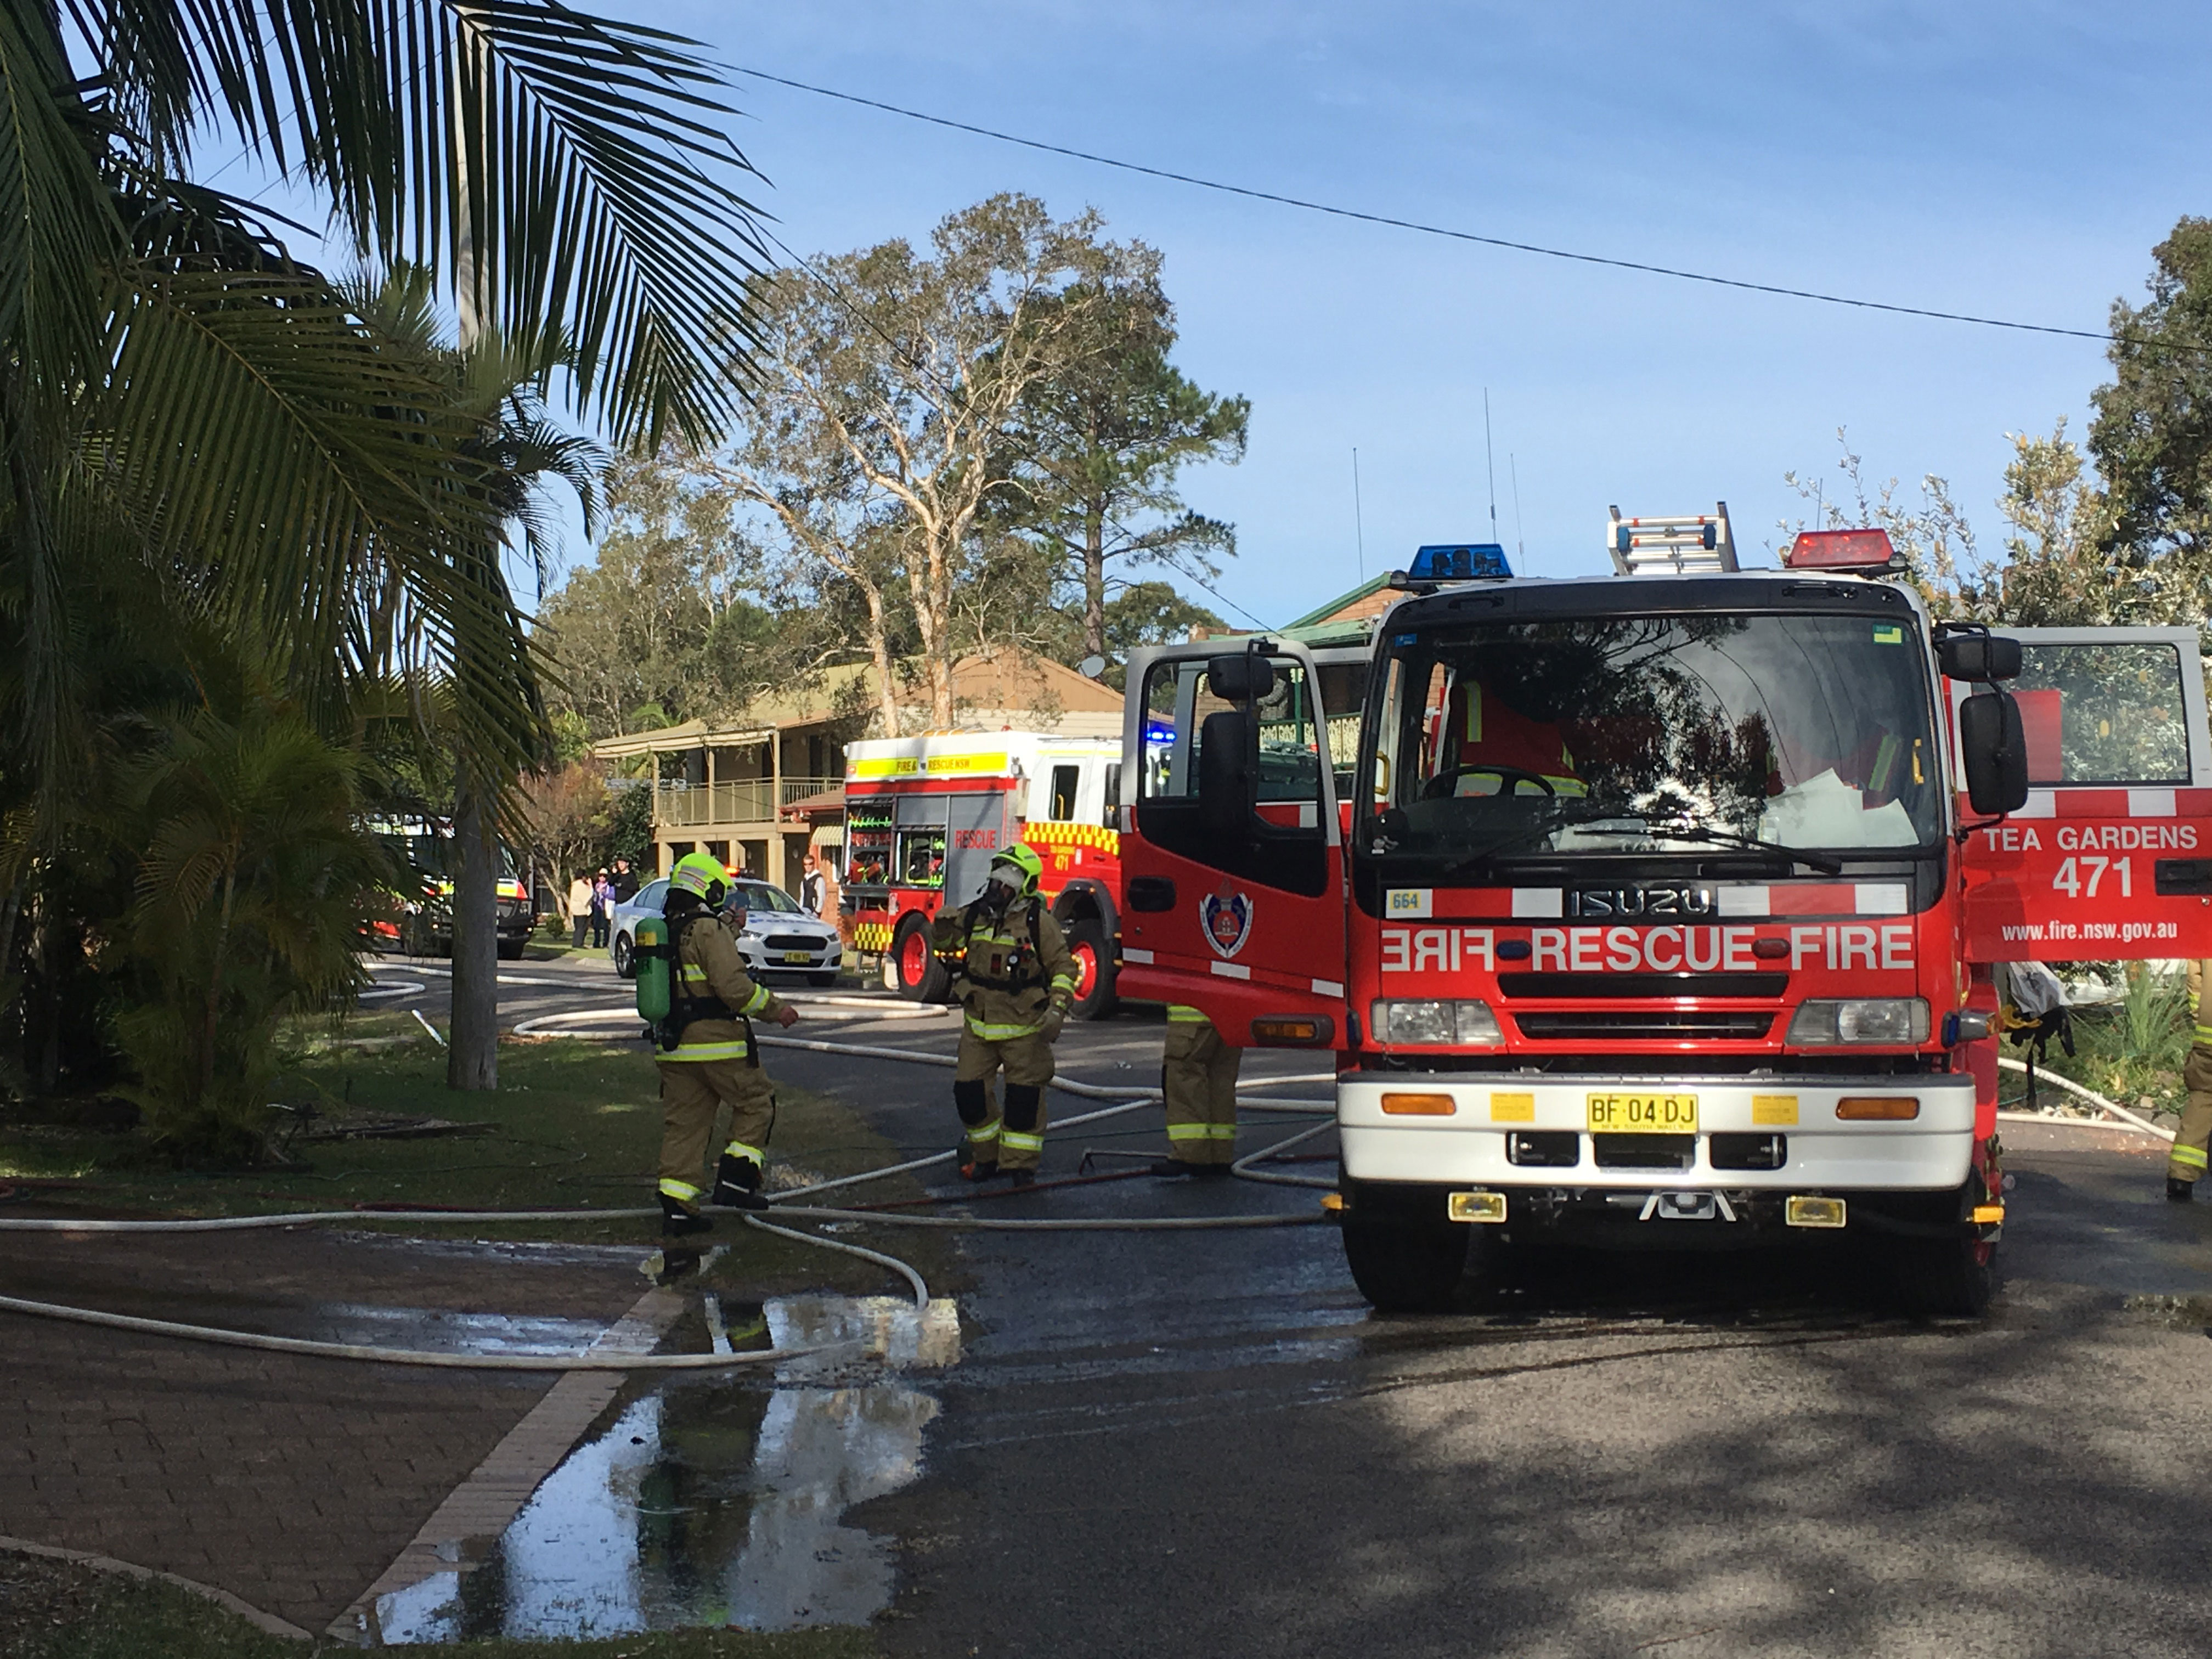 NSW Fire and Rescue crews from Tea Gardens attended the house fire quickly